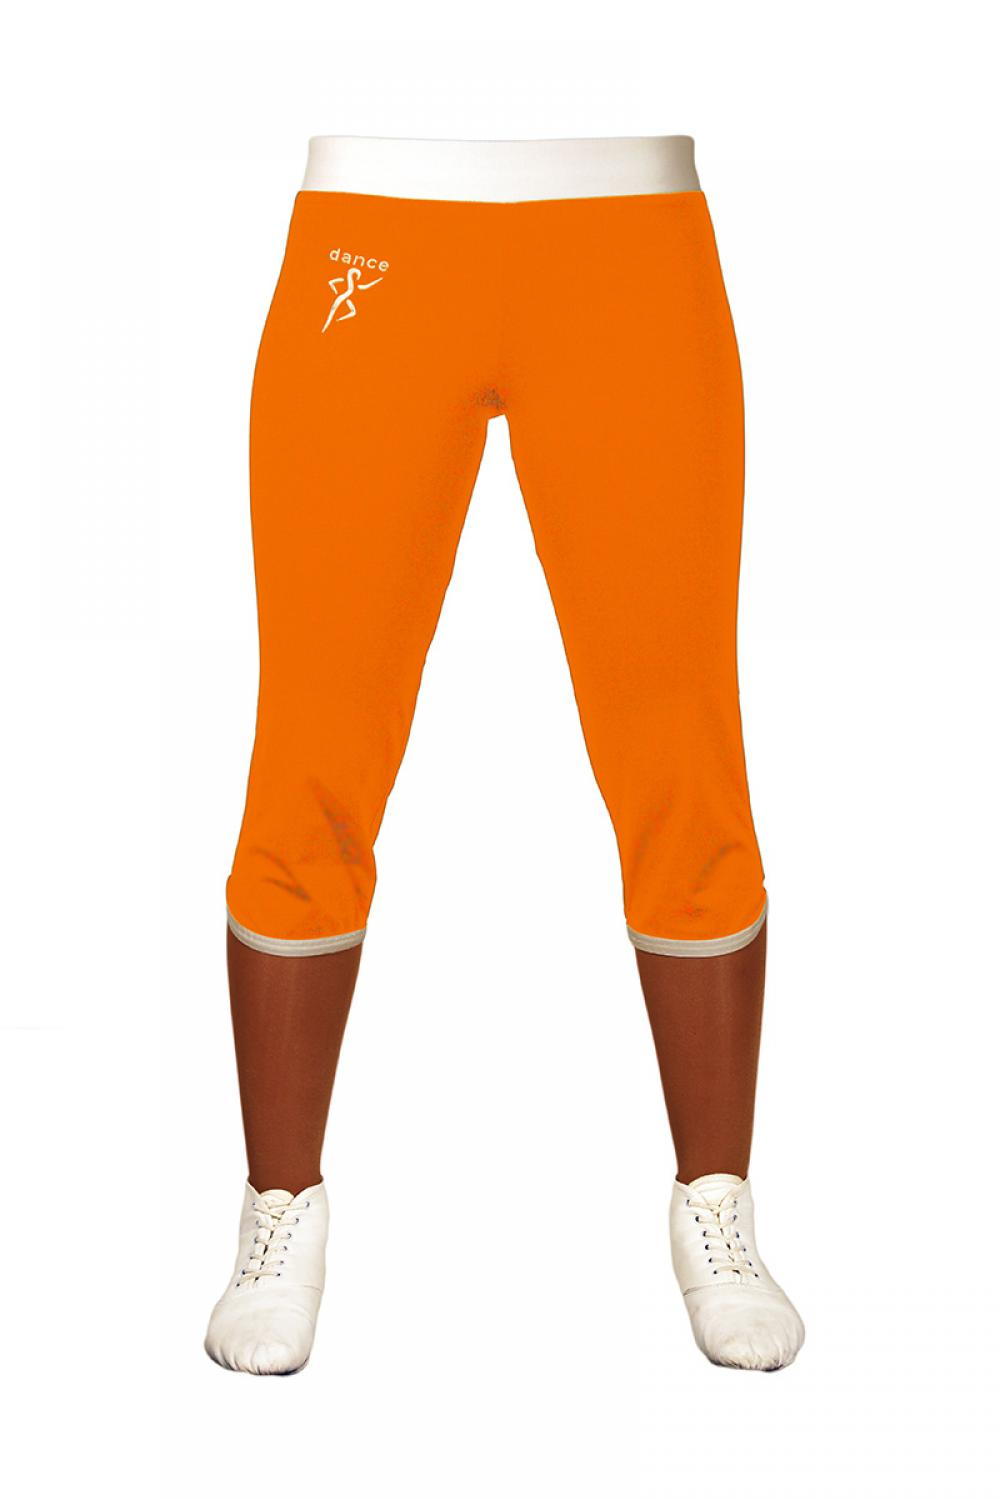 jumper_orange_v.jpg